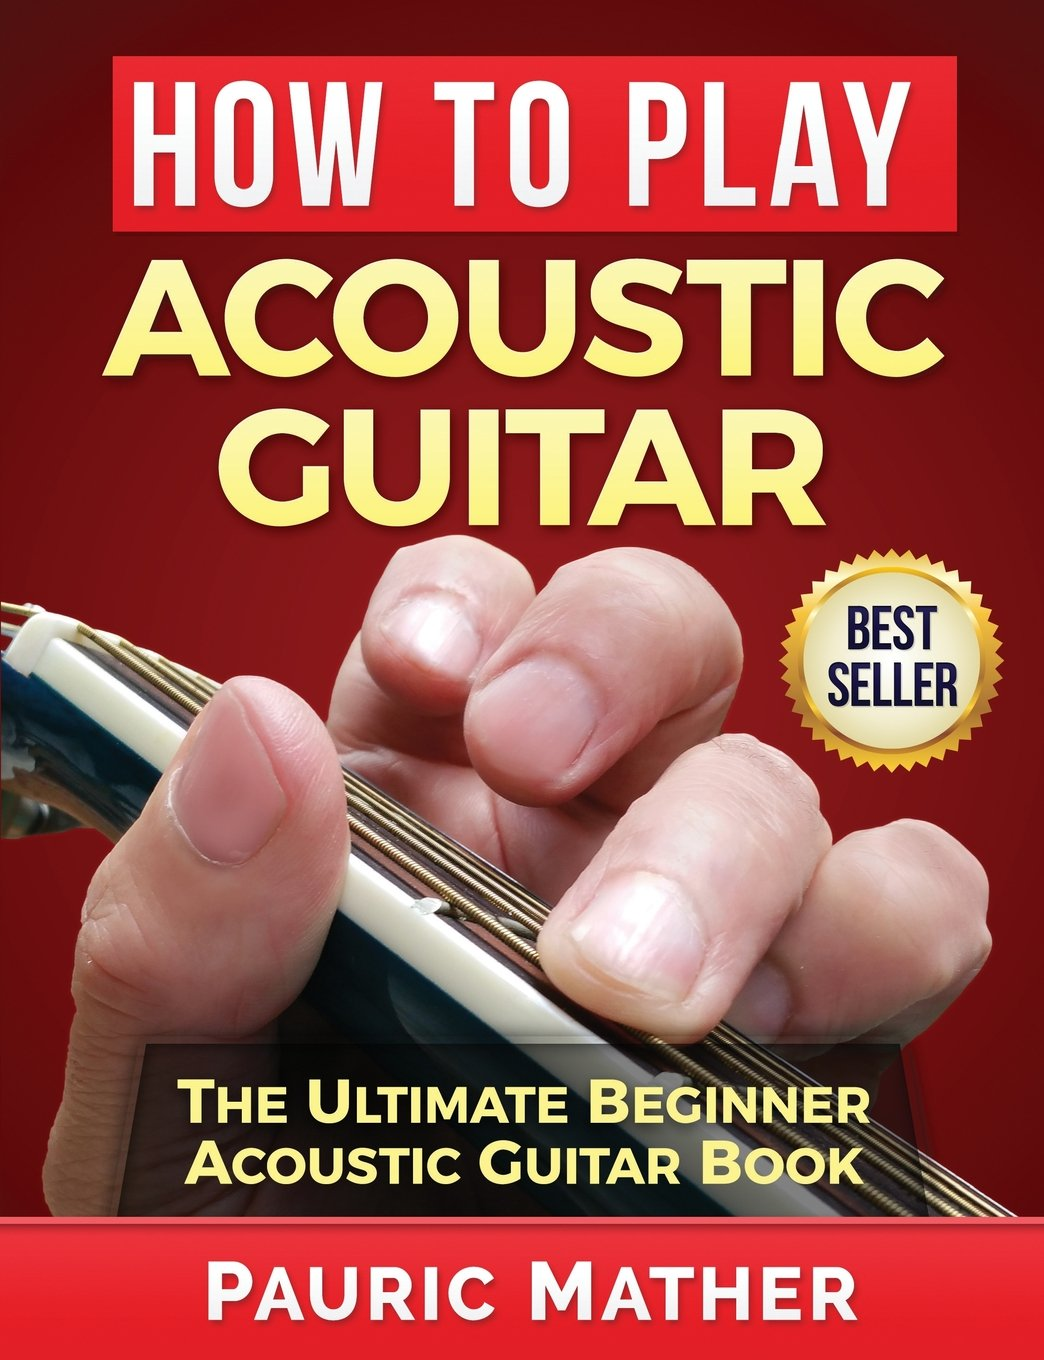 How To Play Acoustic Guitar The Ultimate Beginner Secret Teacher Dounloadable Courses For Beginners Book Pauric Mather 9781546500803 Books